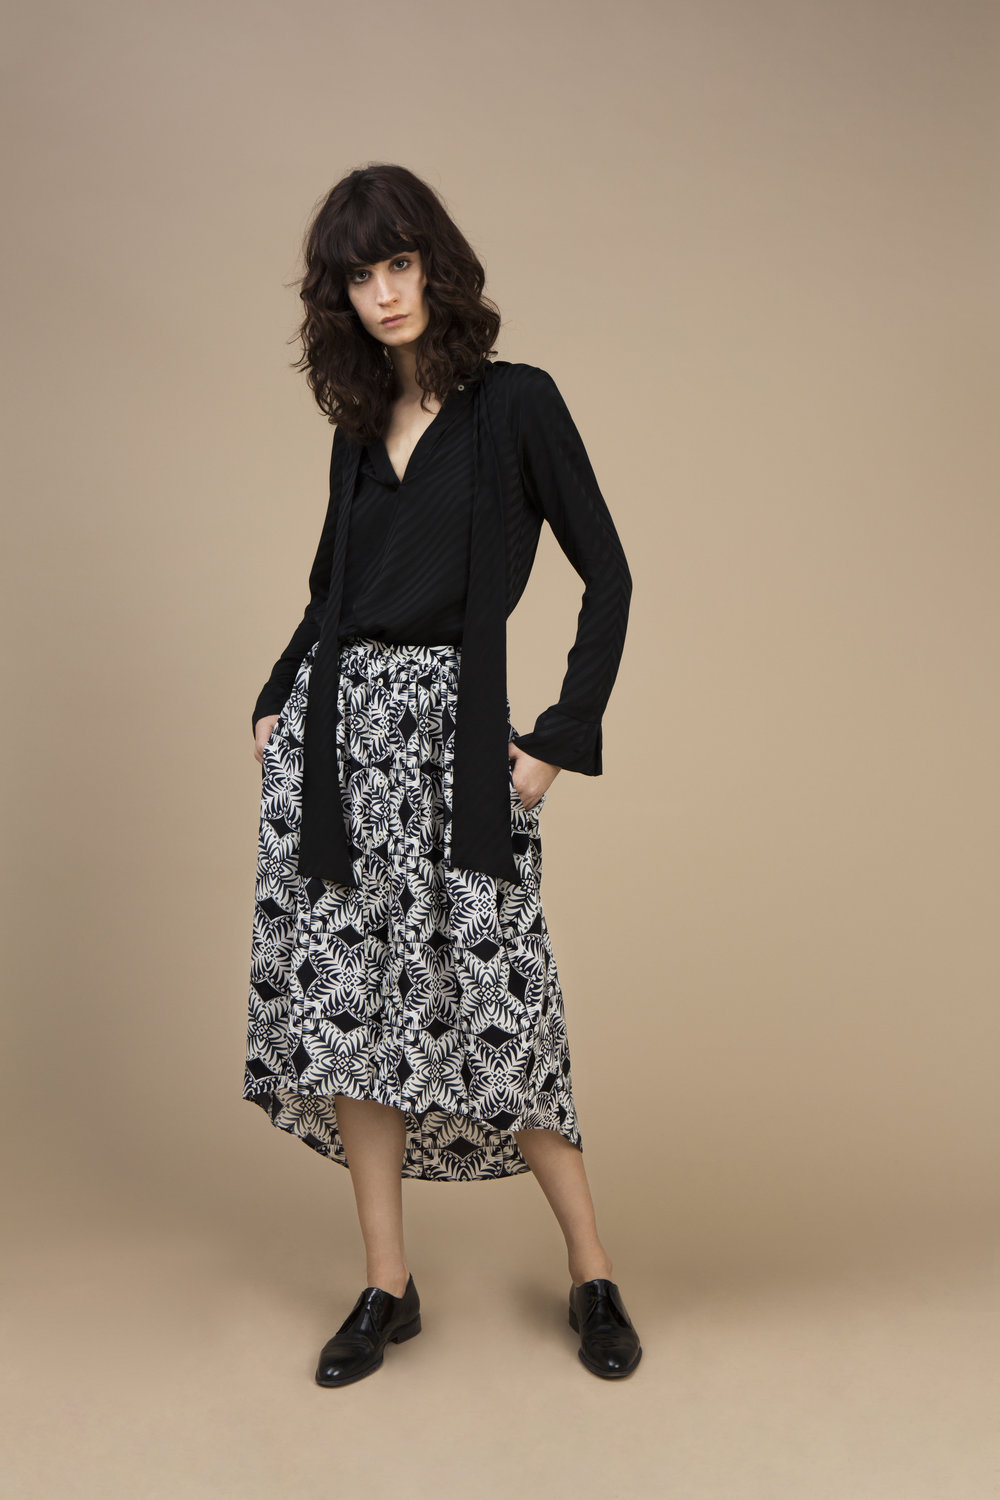 Crepe satin silk Ascot top - stripy black and crepe silk Long and asymmetric skirt — Kaleidoscope